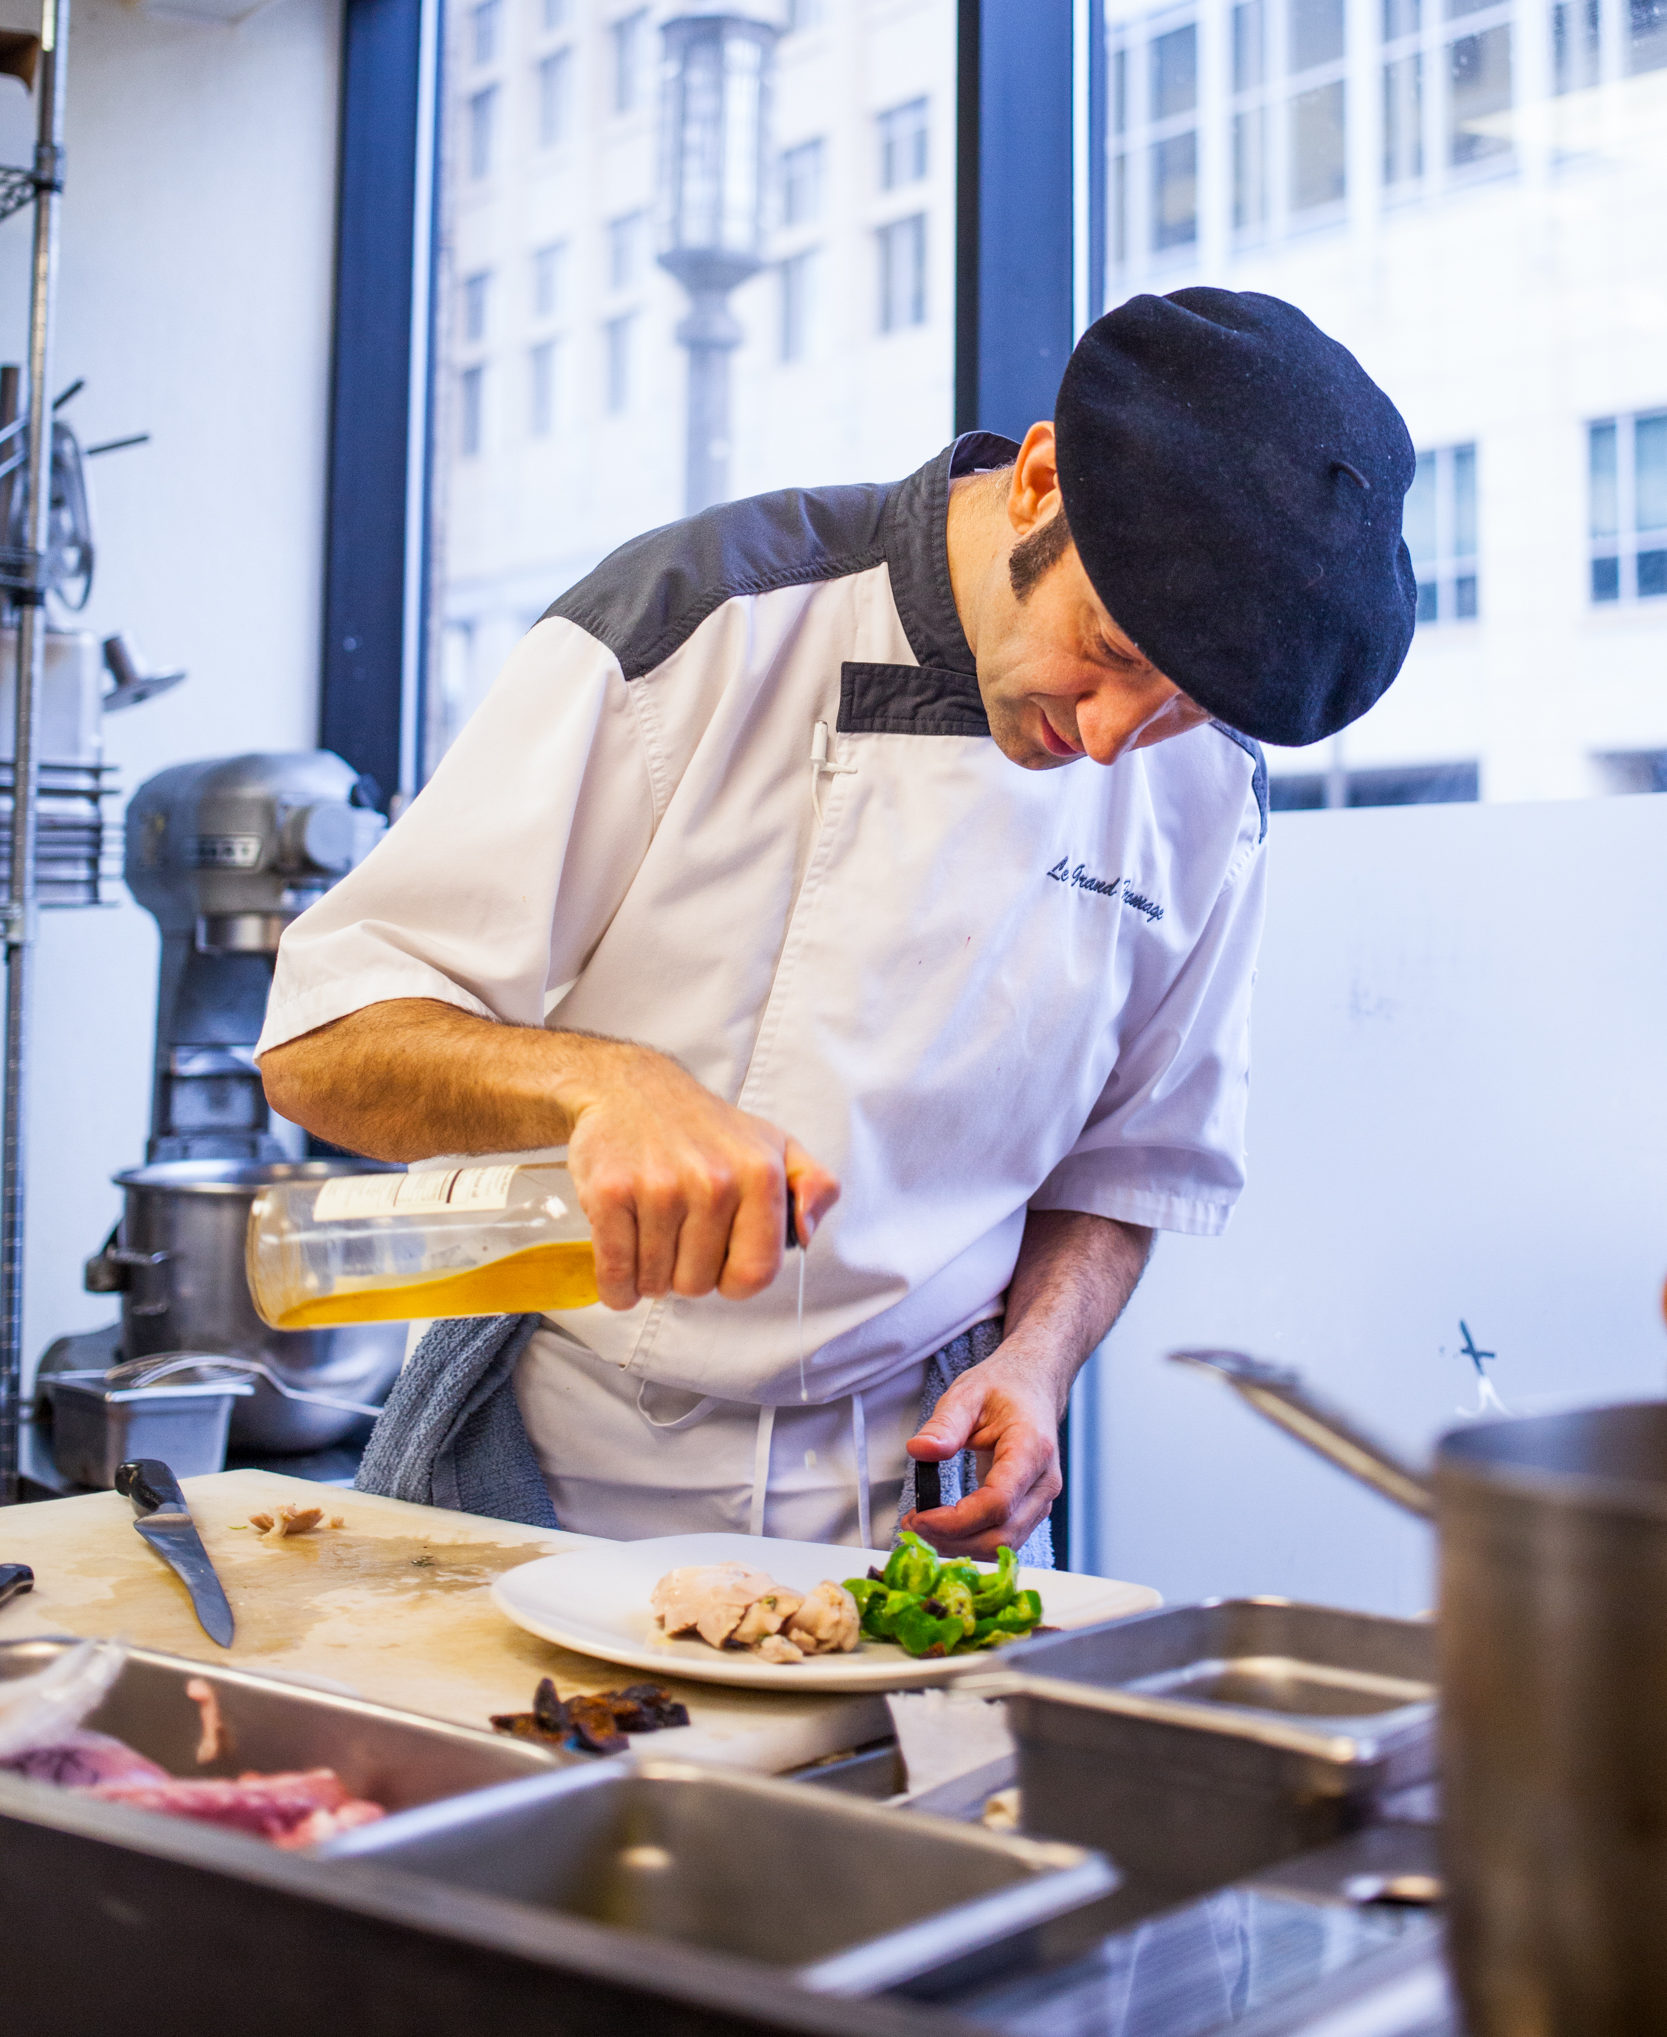 Vincent Francoual prepares a dish // Photo by Tj Turner